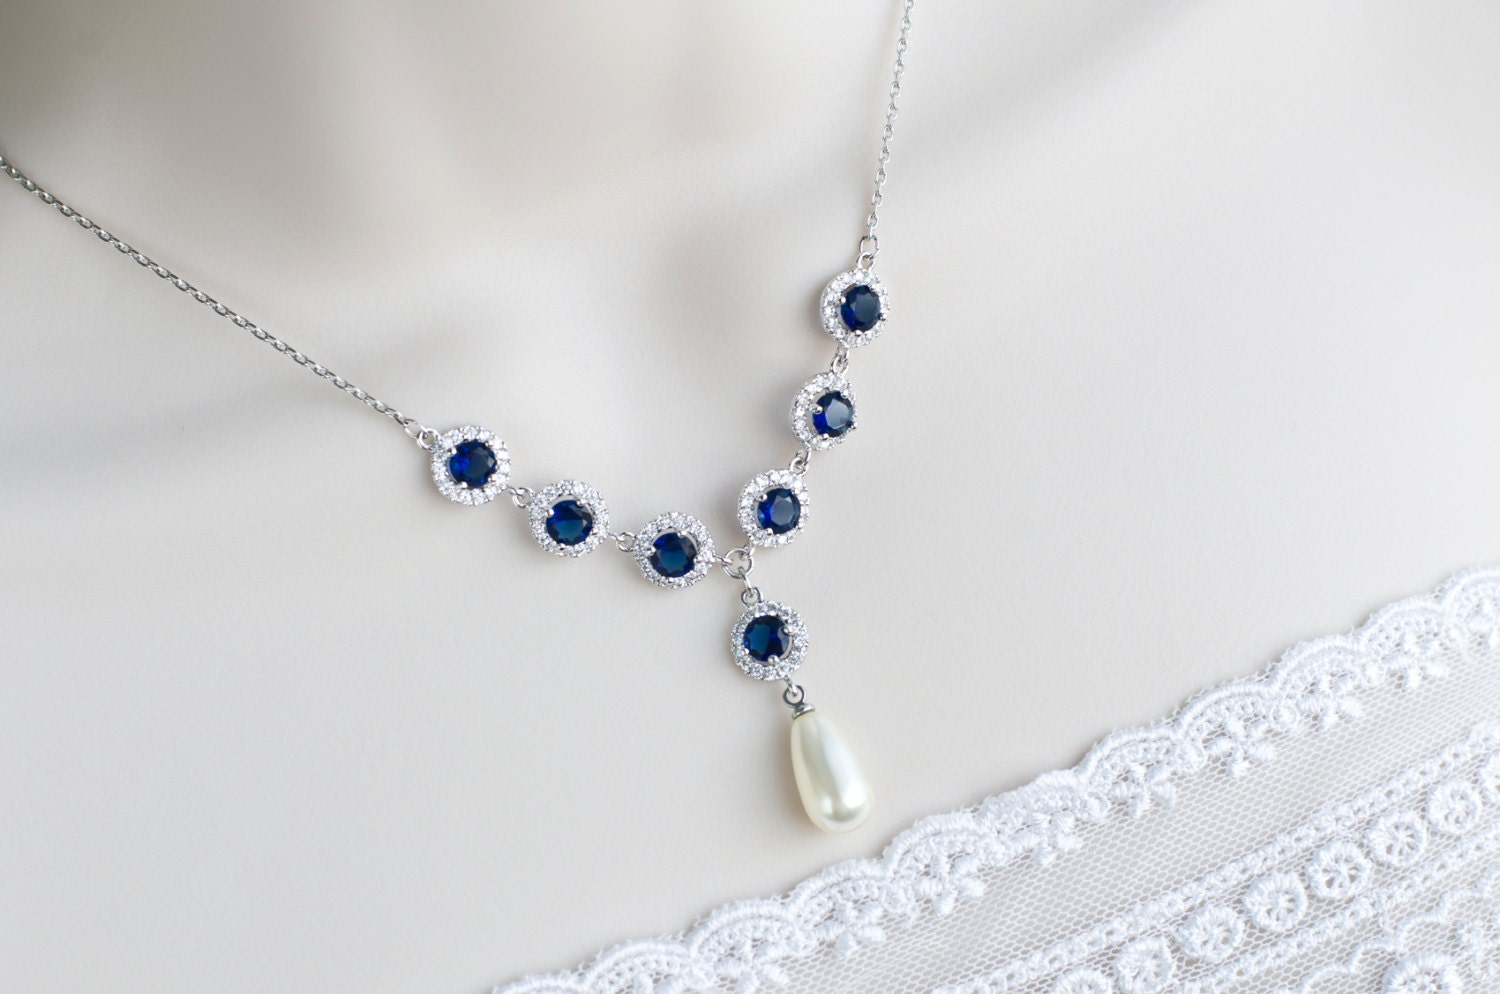 item necklace sets accessories silver in on sterling bracelet natural from set blue jewelry sapphire gemstone